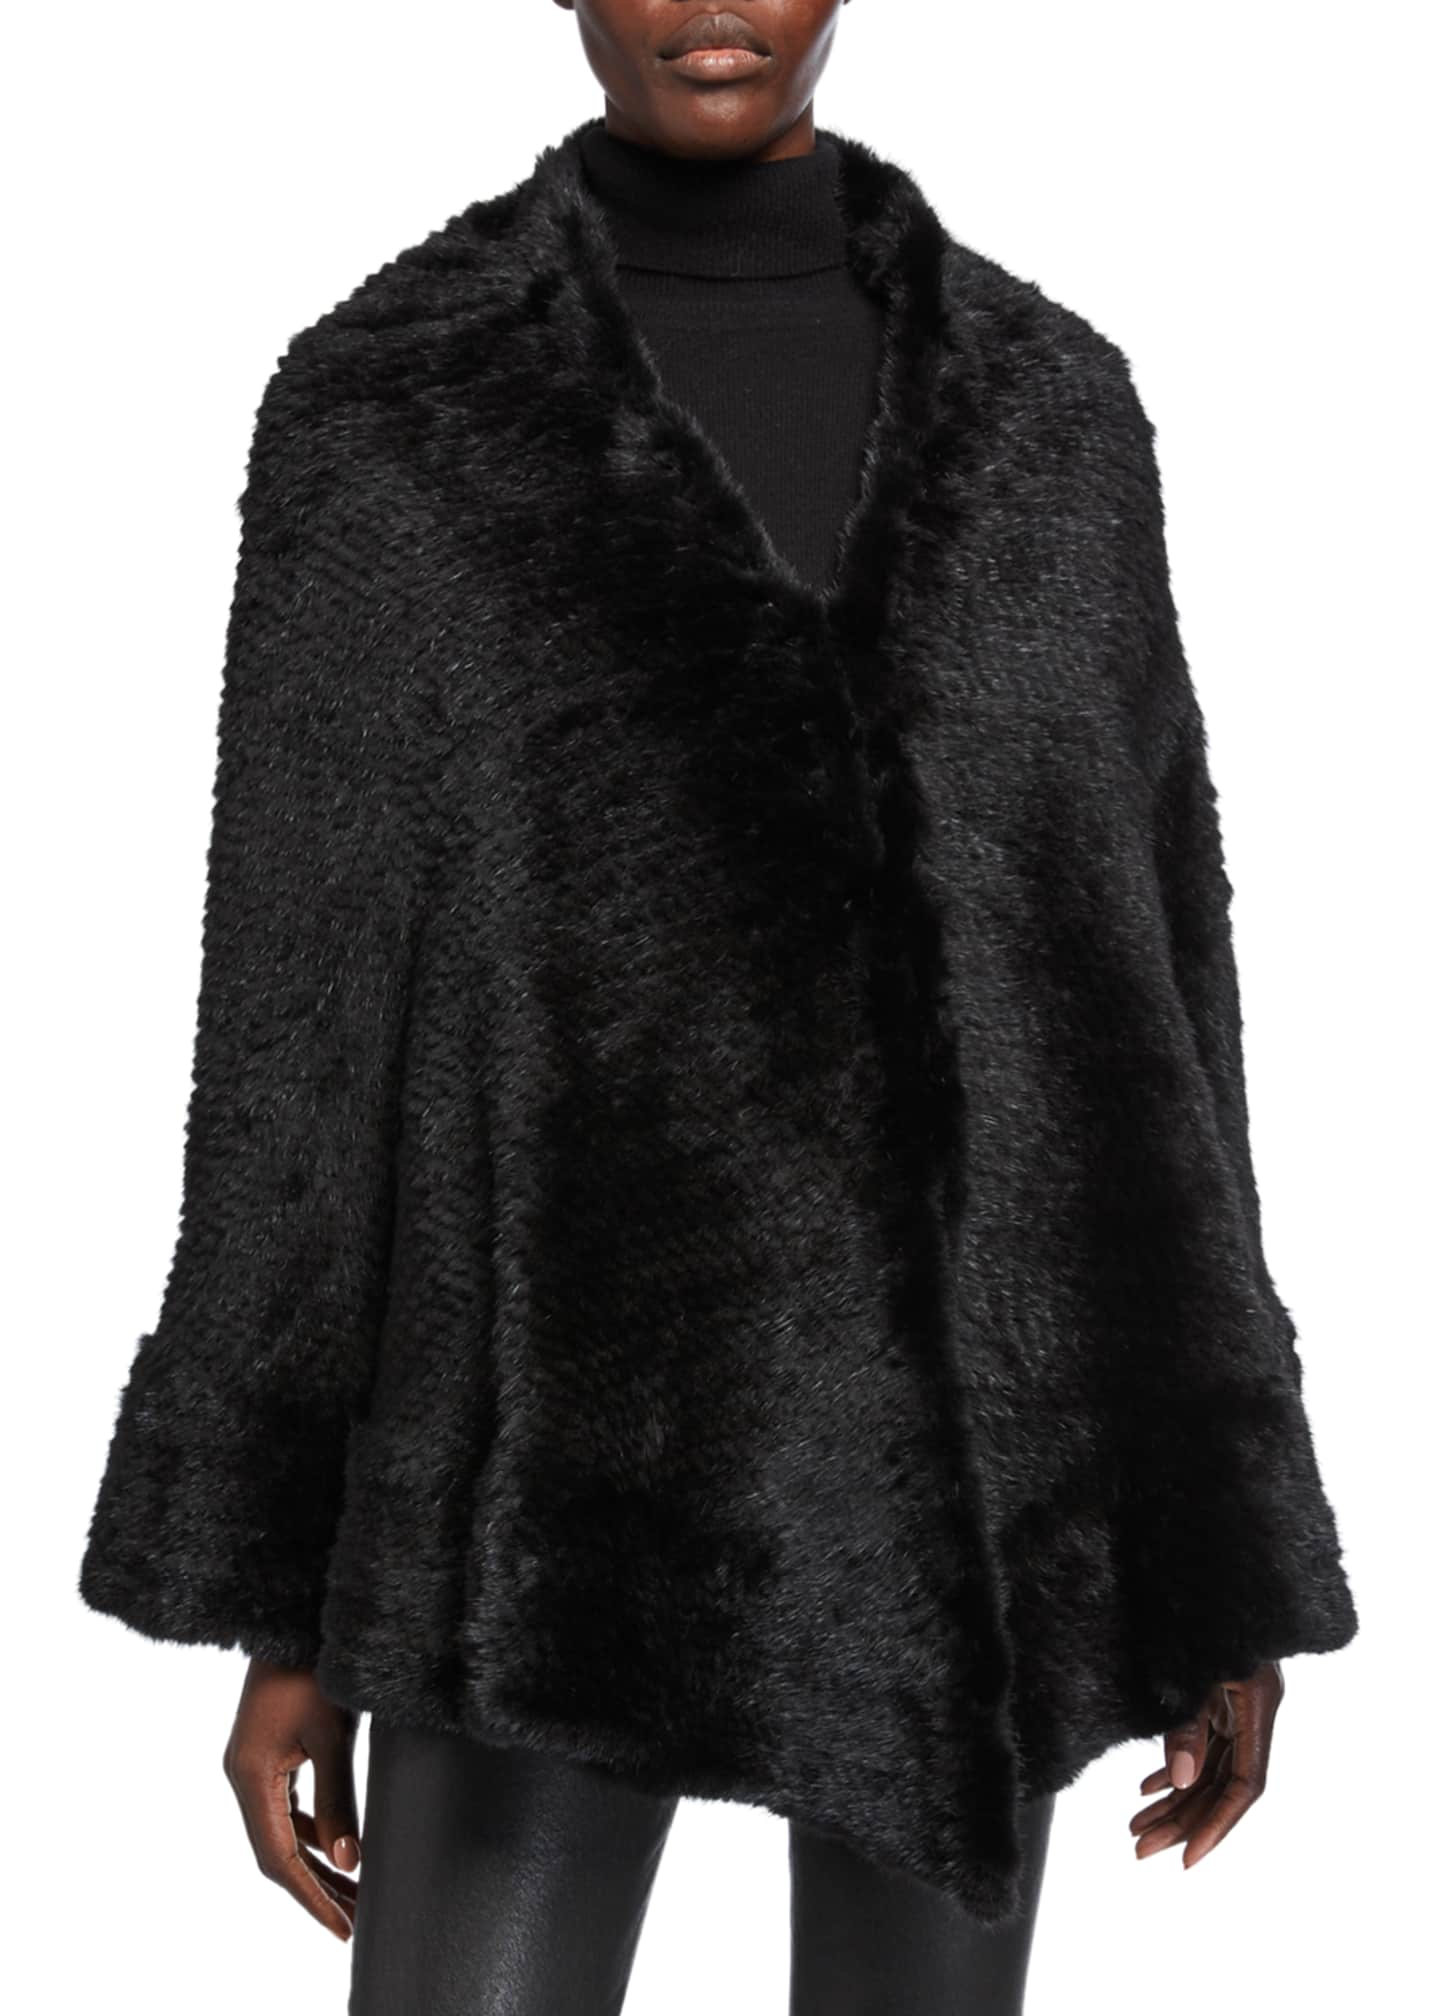 Belle Fare Knitted Mink Fur Cape